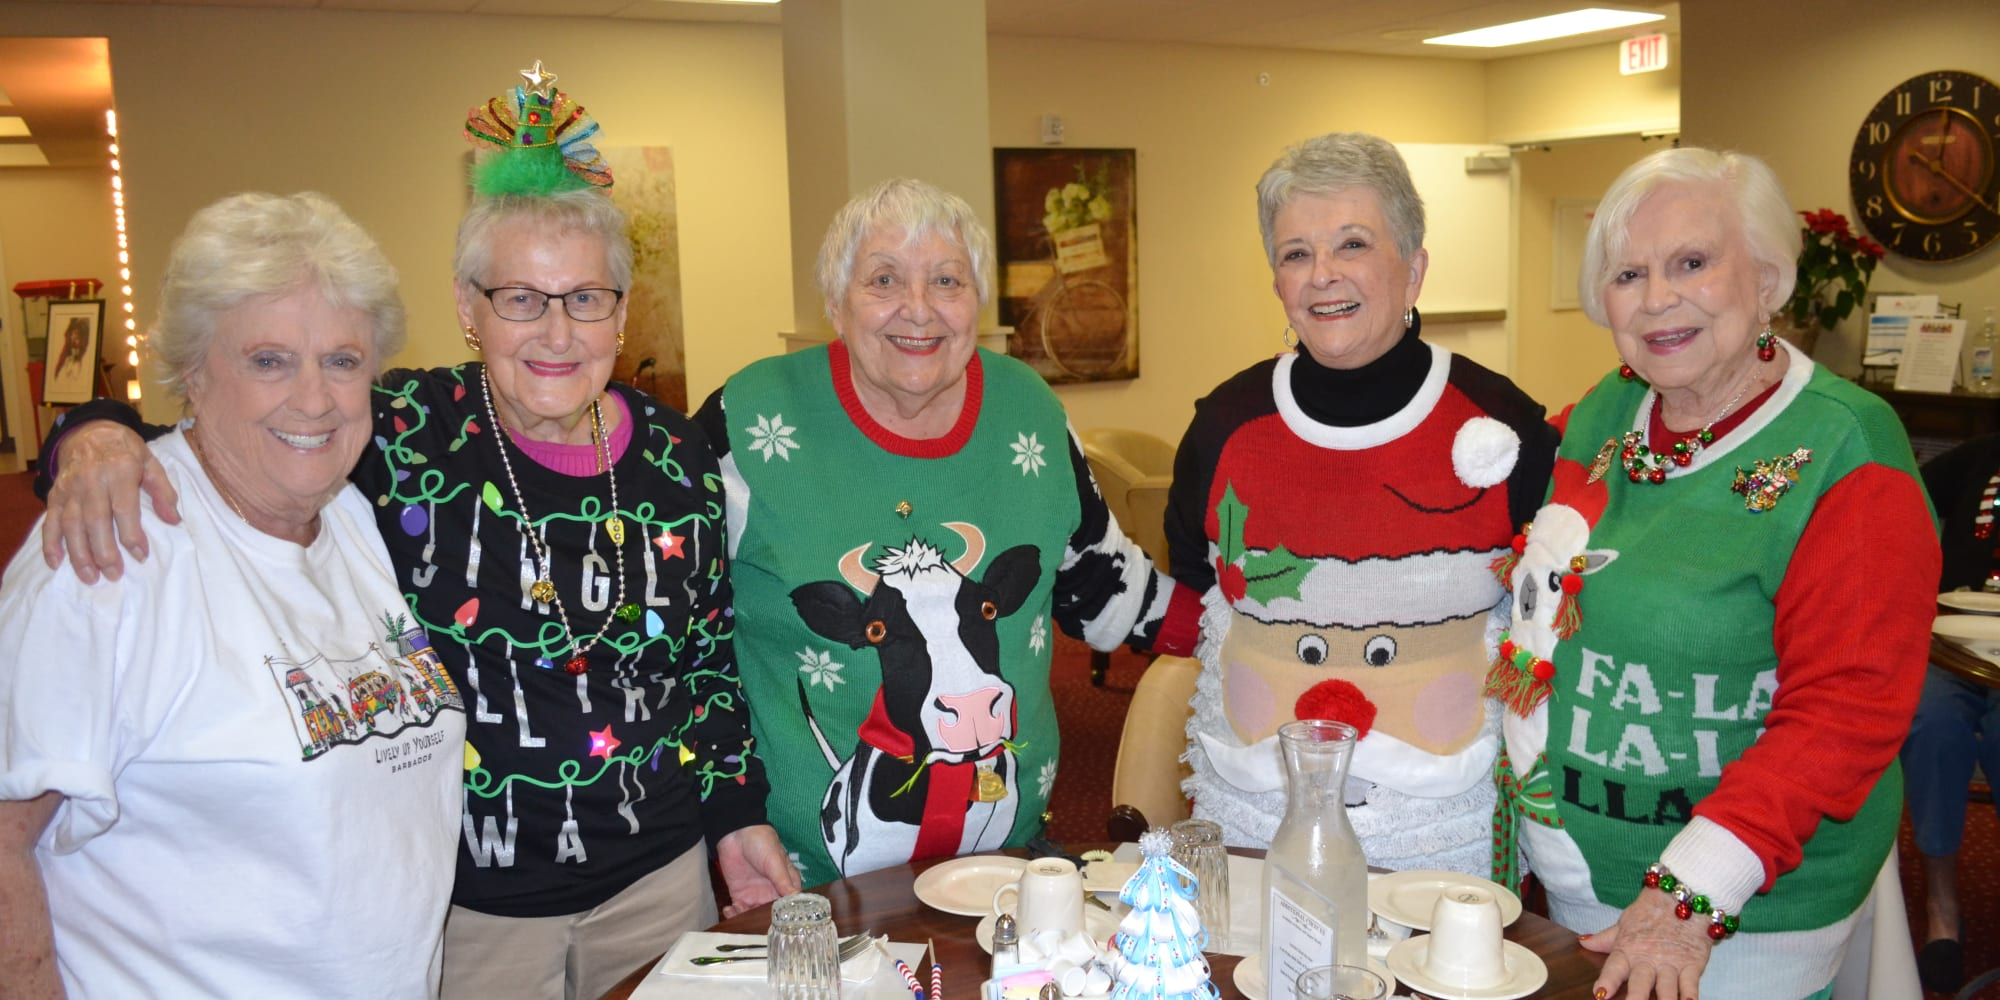 Residents in Christmas sweaters at Heatherwood Gracious Retirement Living in Tewksbury, Massachusetts